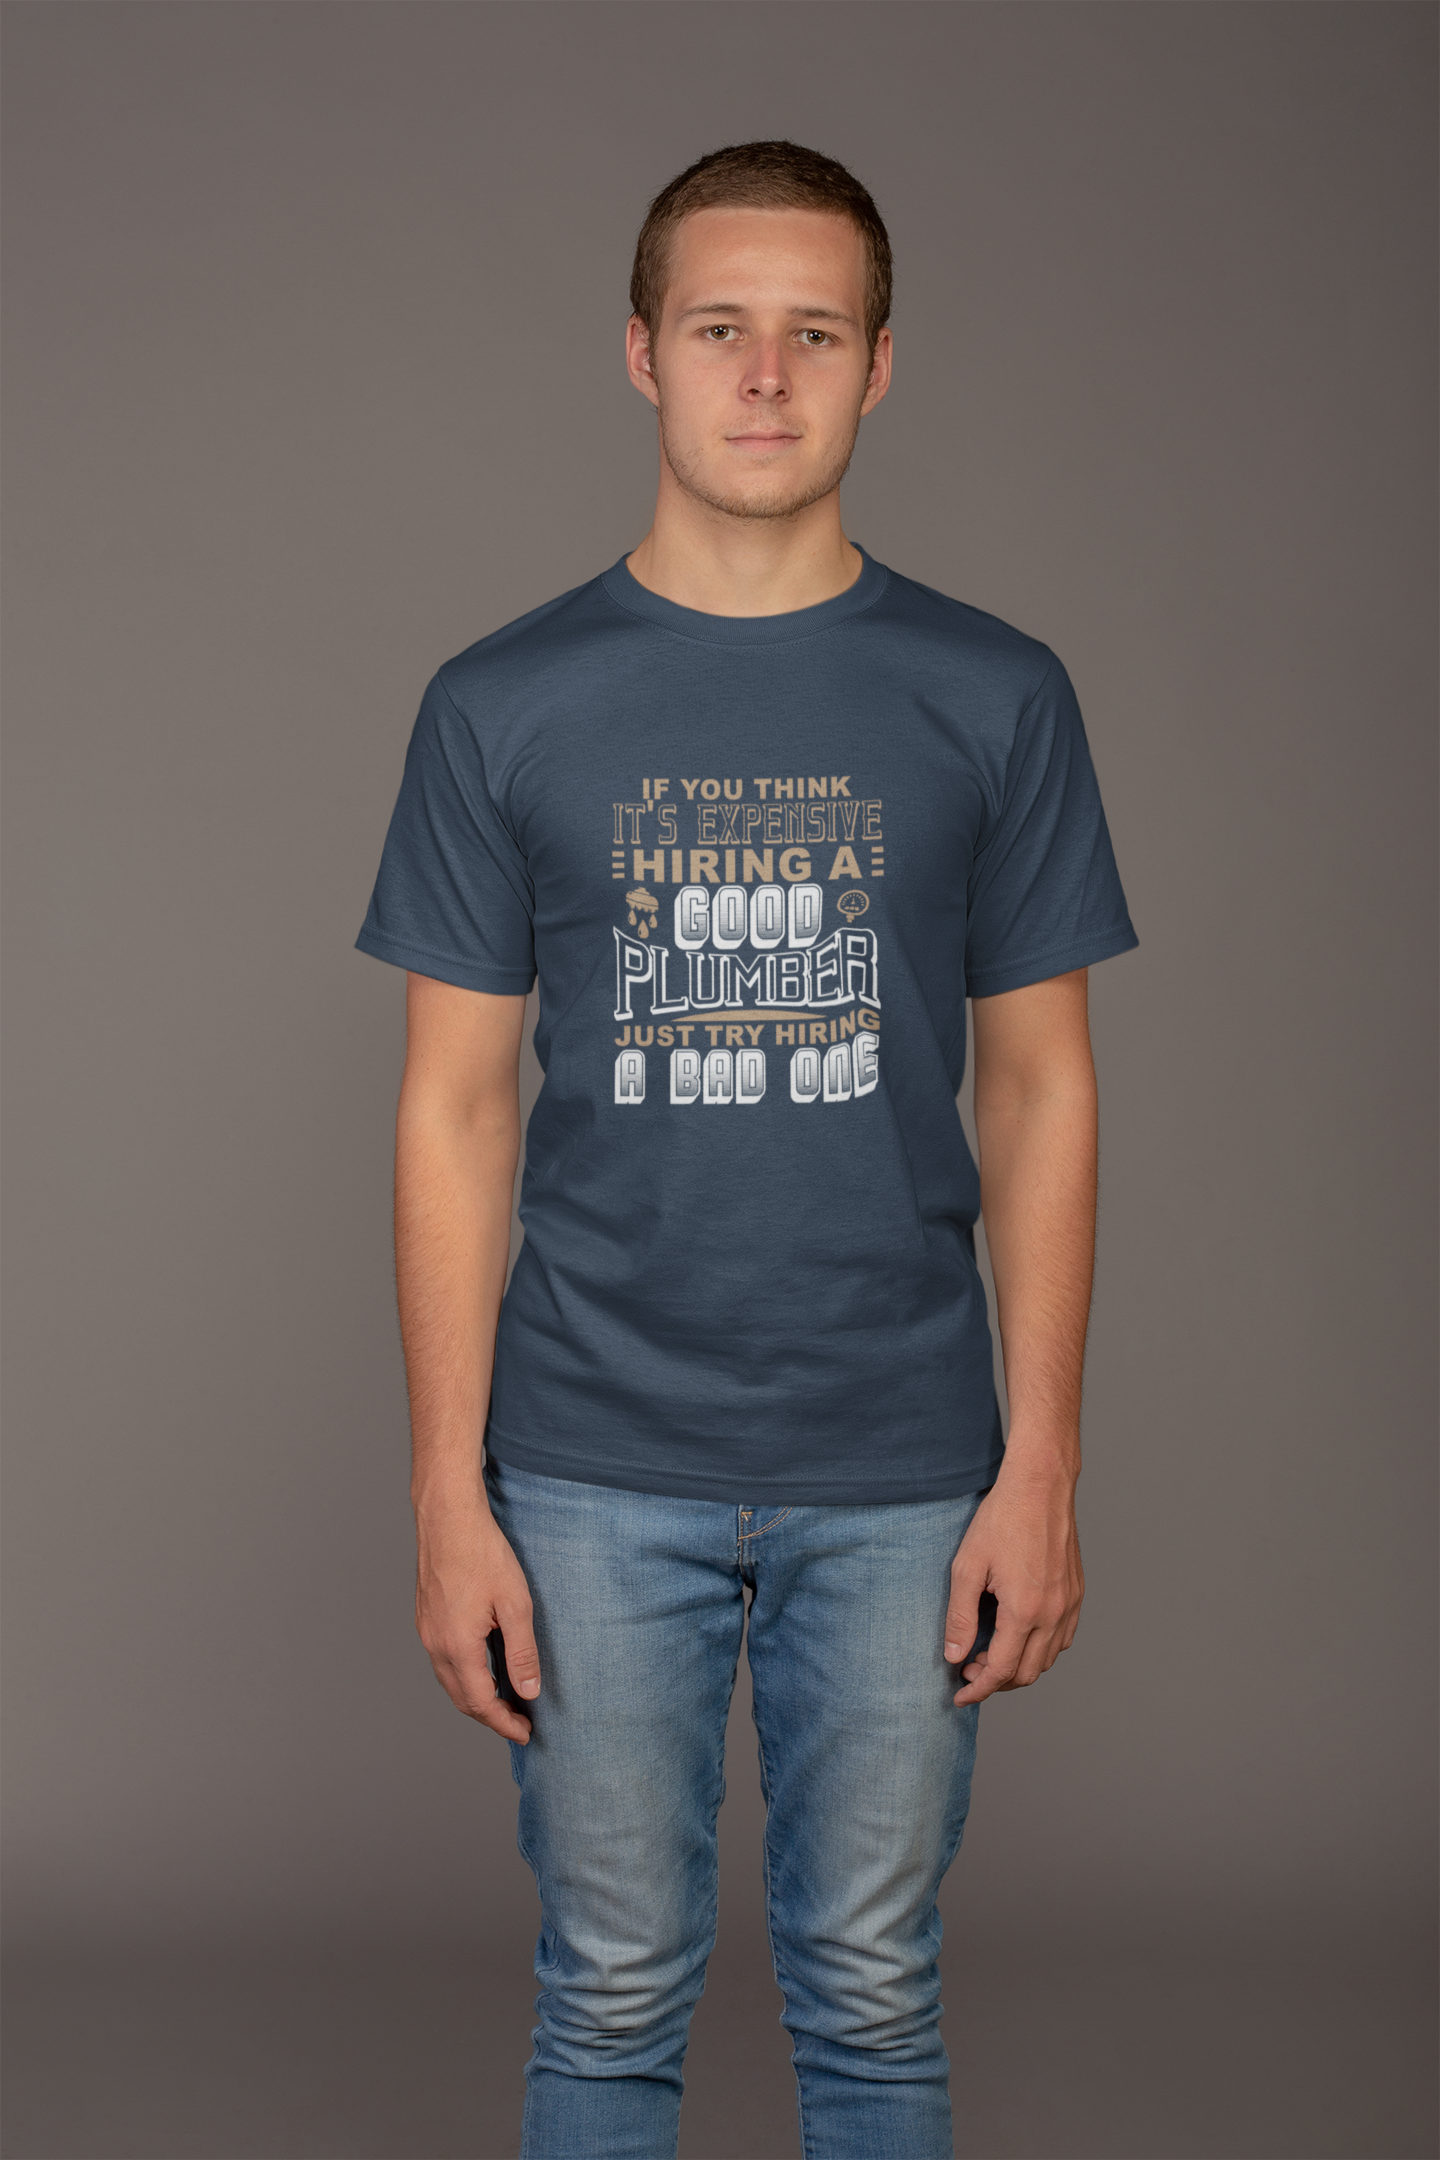 mockup-of-a-man-wearing-a-t-shirt-and-a-buzz-cut-21136.png